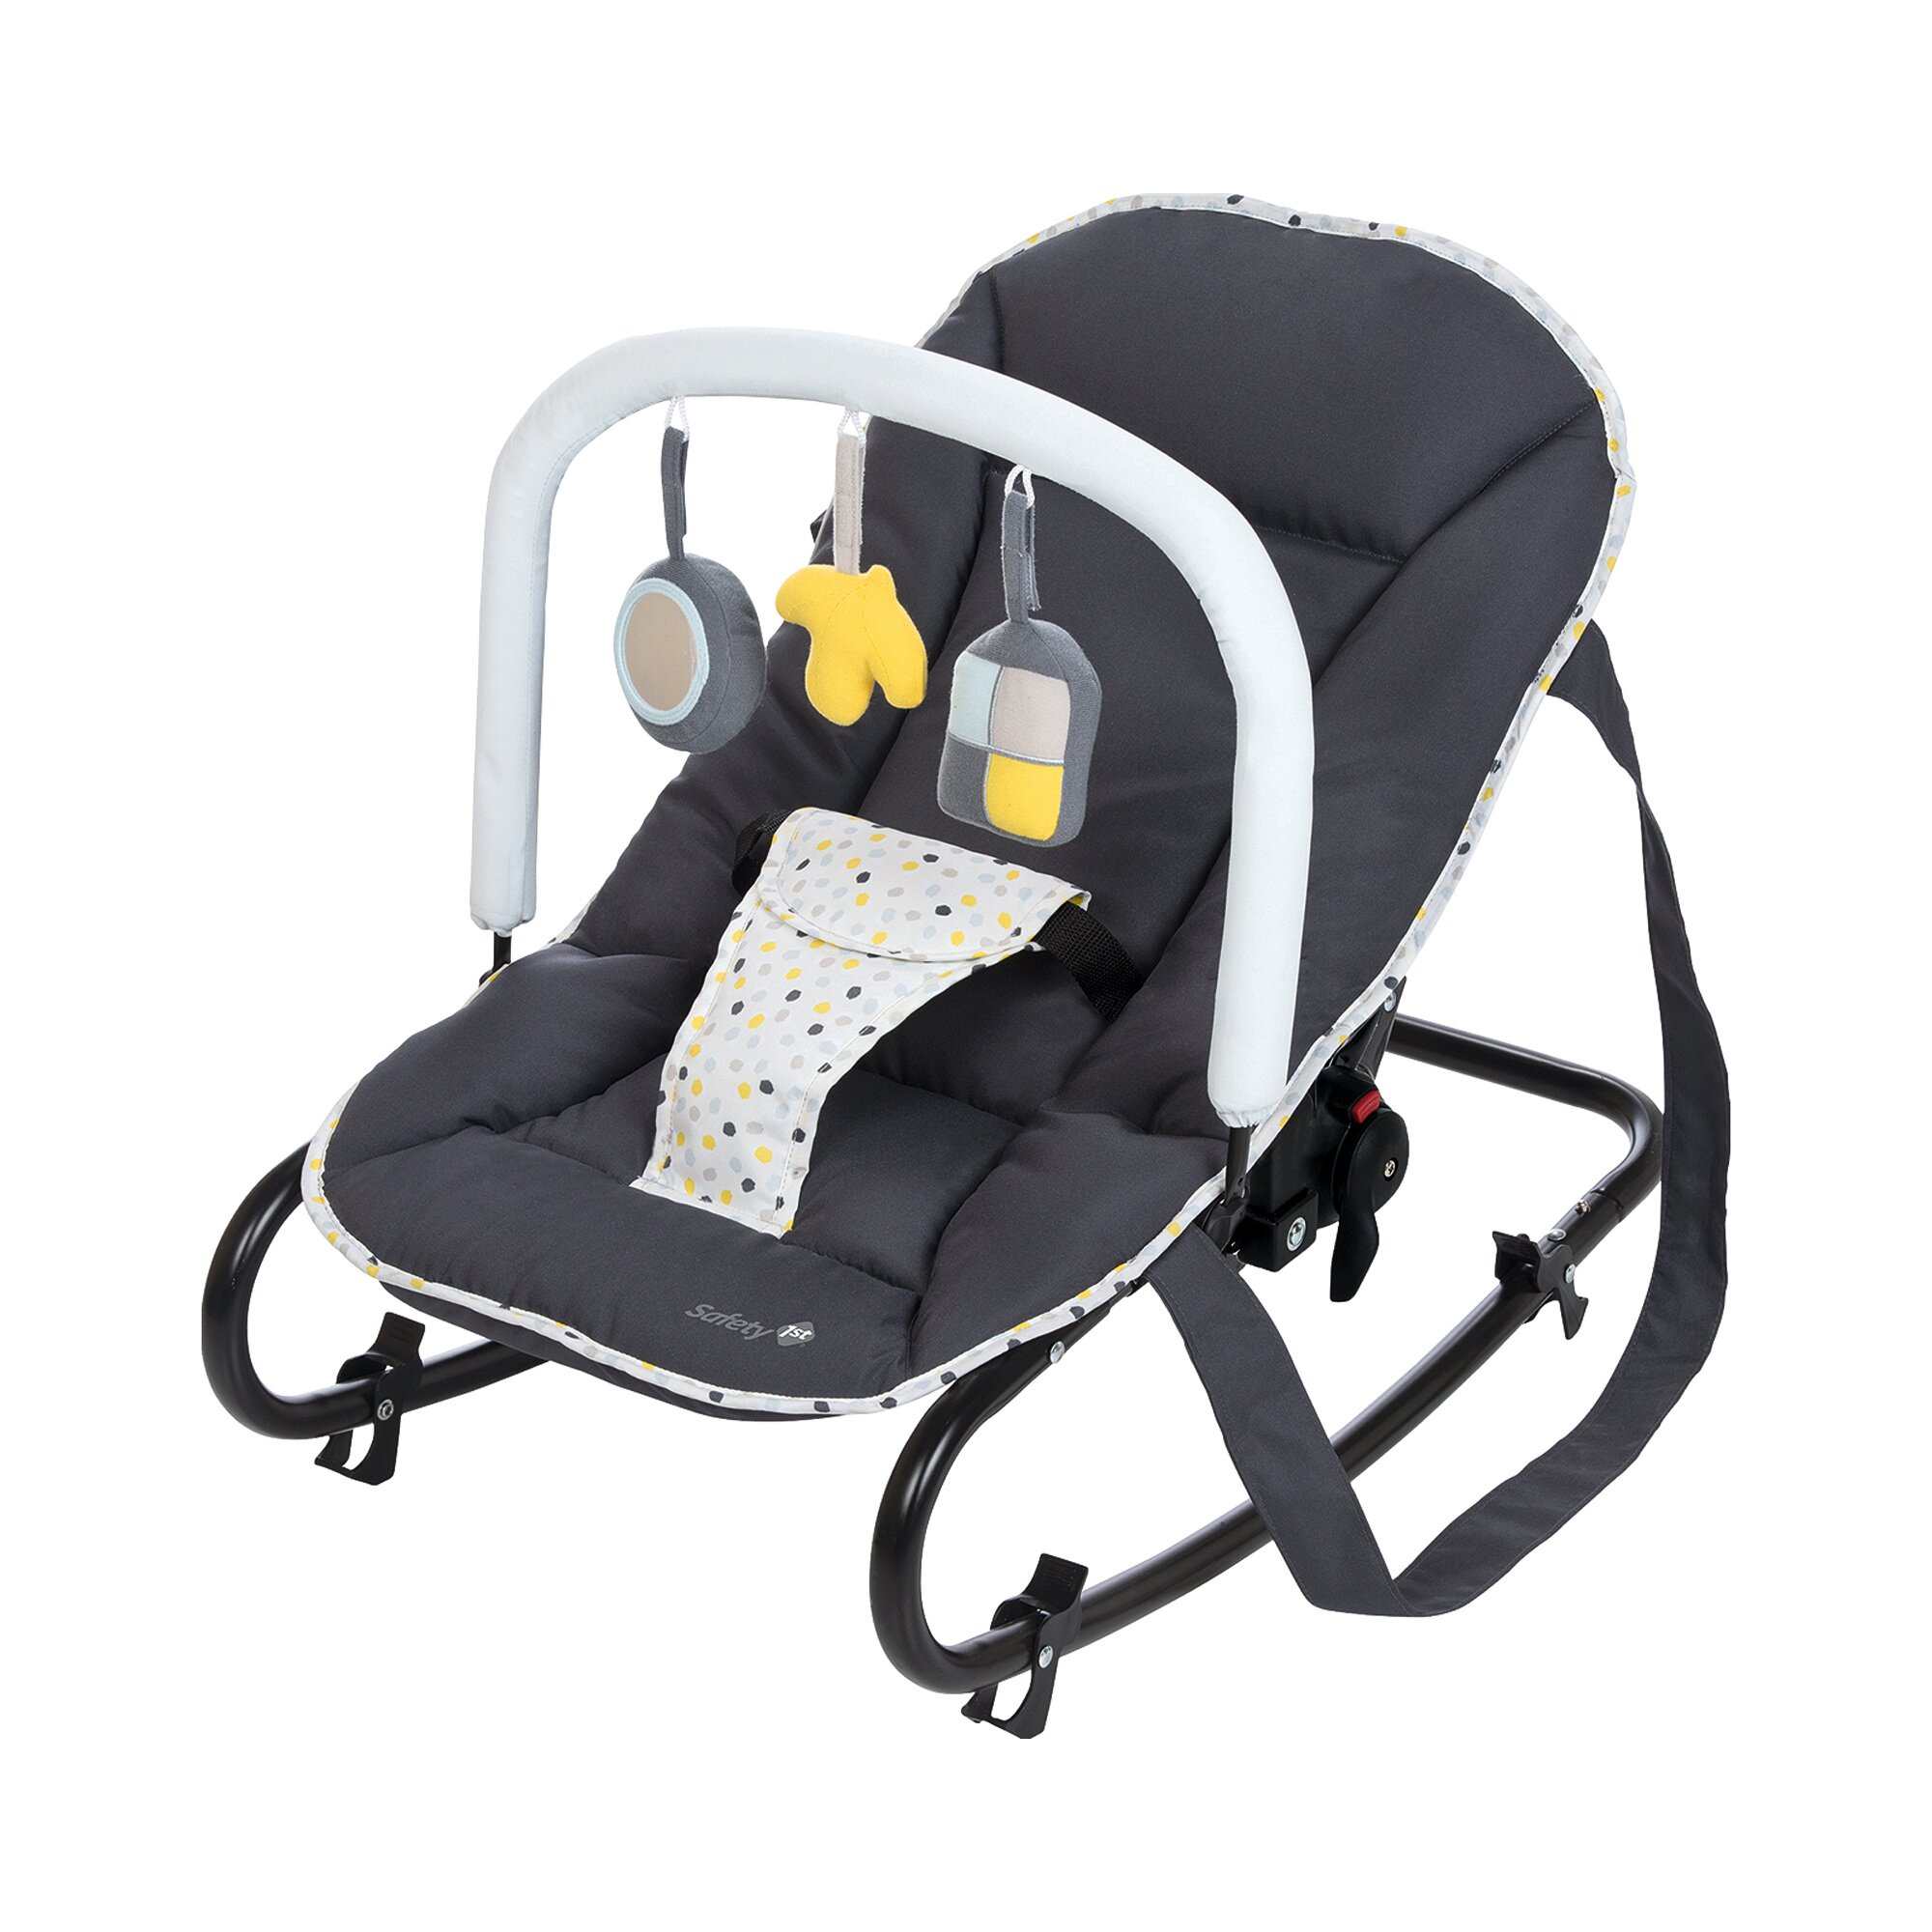 Safety 1st Babywippe Koala